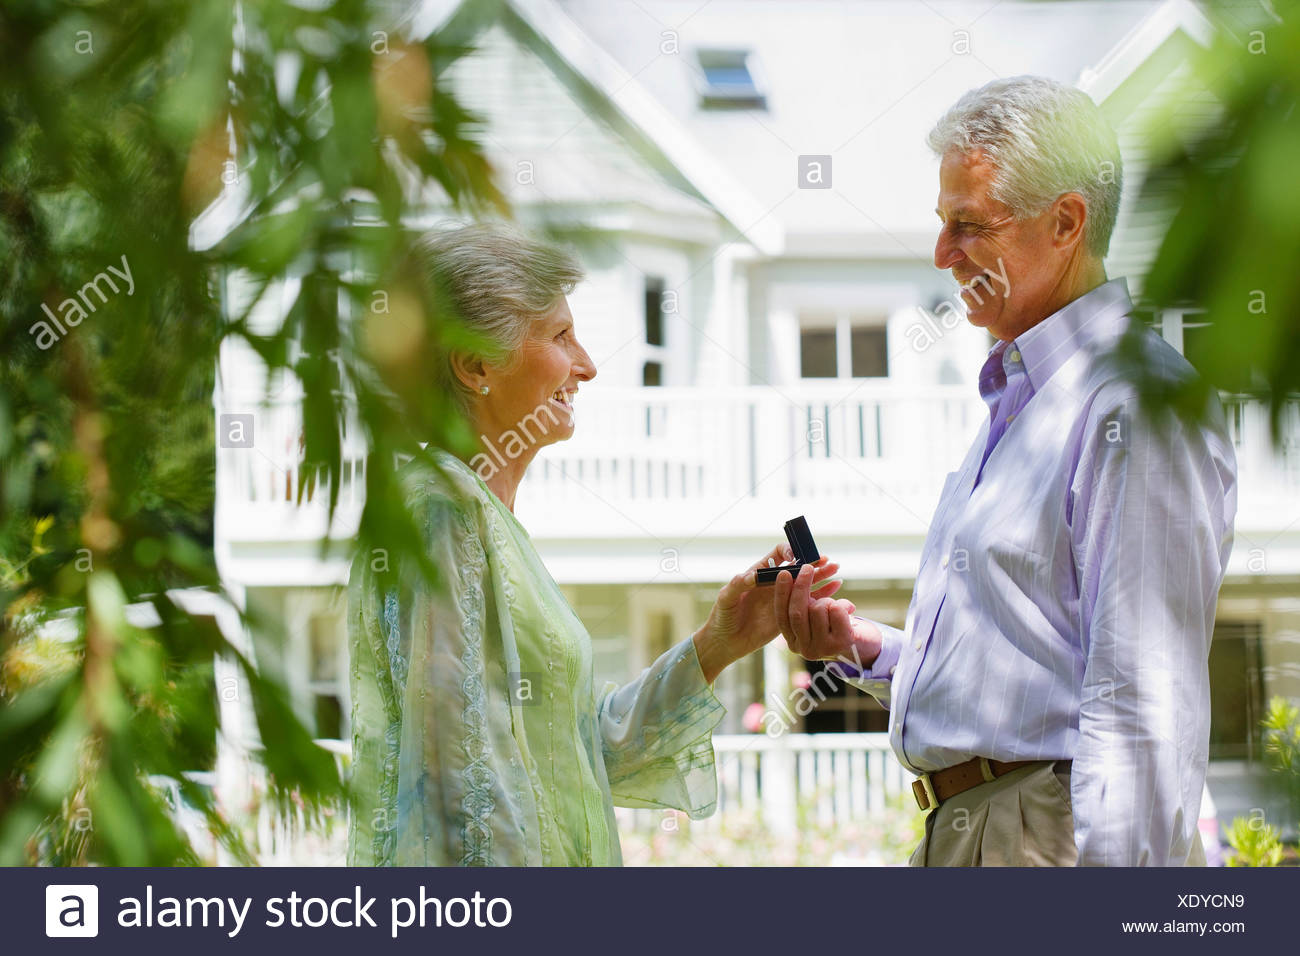 Senior man proposing to senior woman in summer garden near house smiling profile - Stock Image